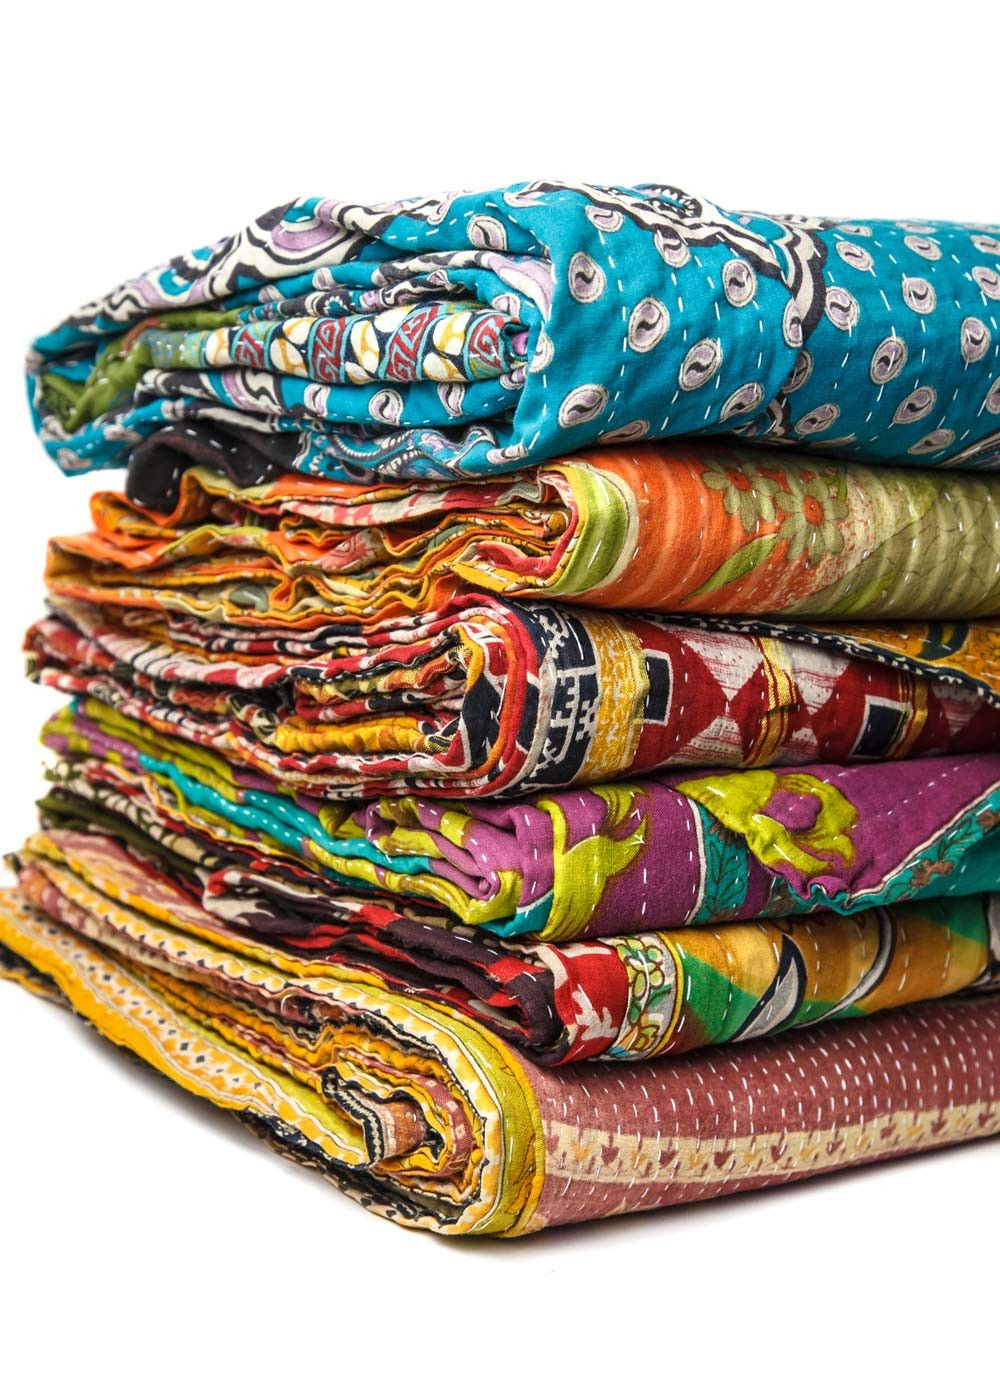 Vintage kantha quilt hand stitching saris and traditional